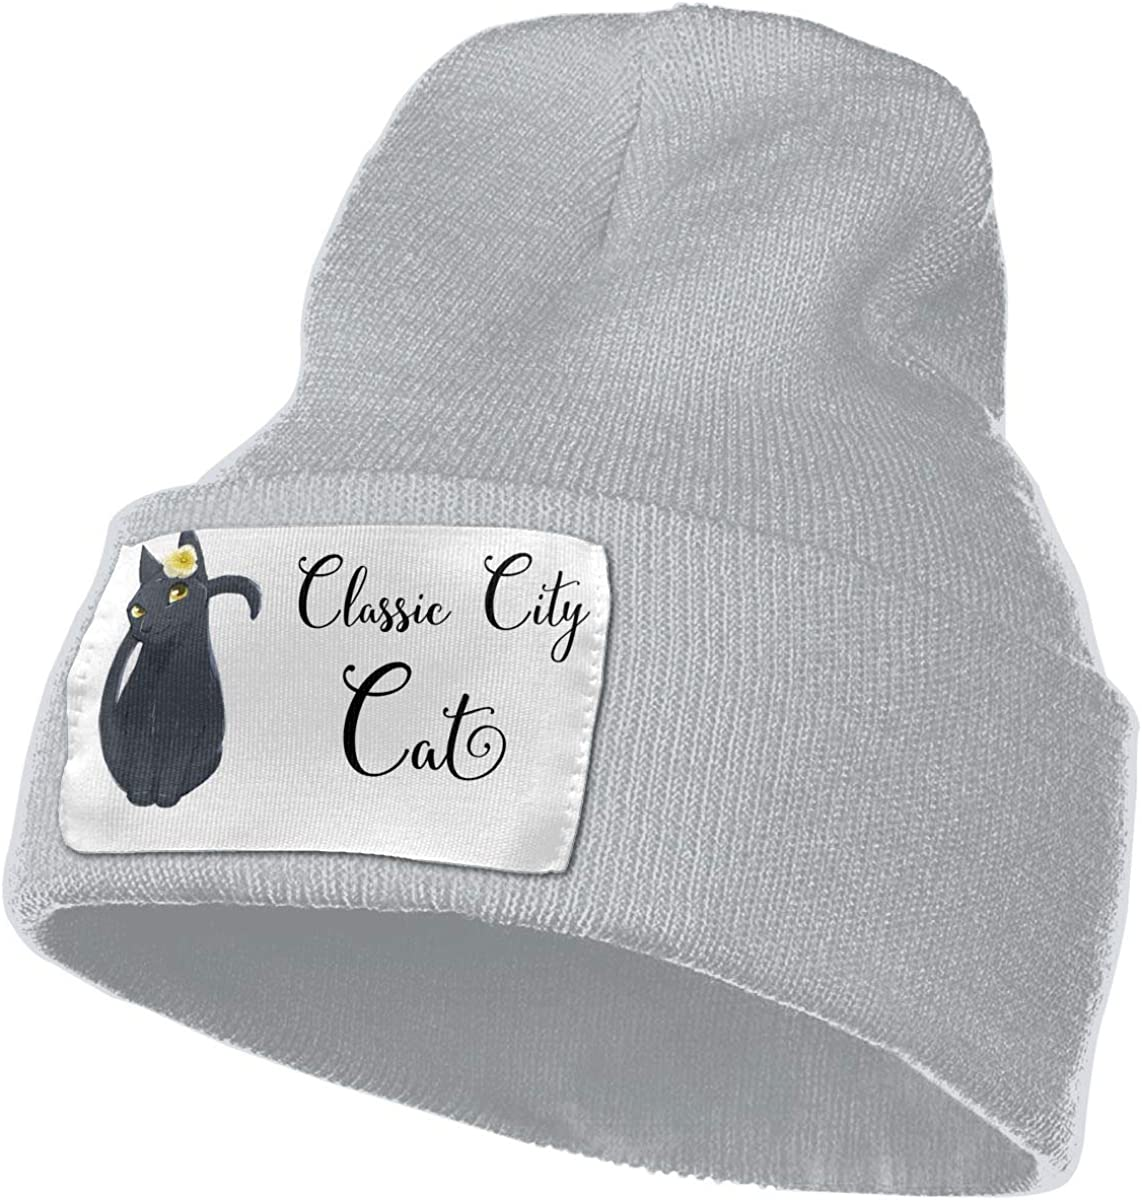 Classic City Cat Unisex Fashion Knitted Hat Luxury Hip-Hop Cap